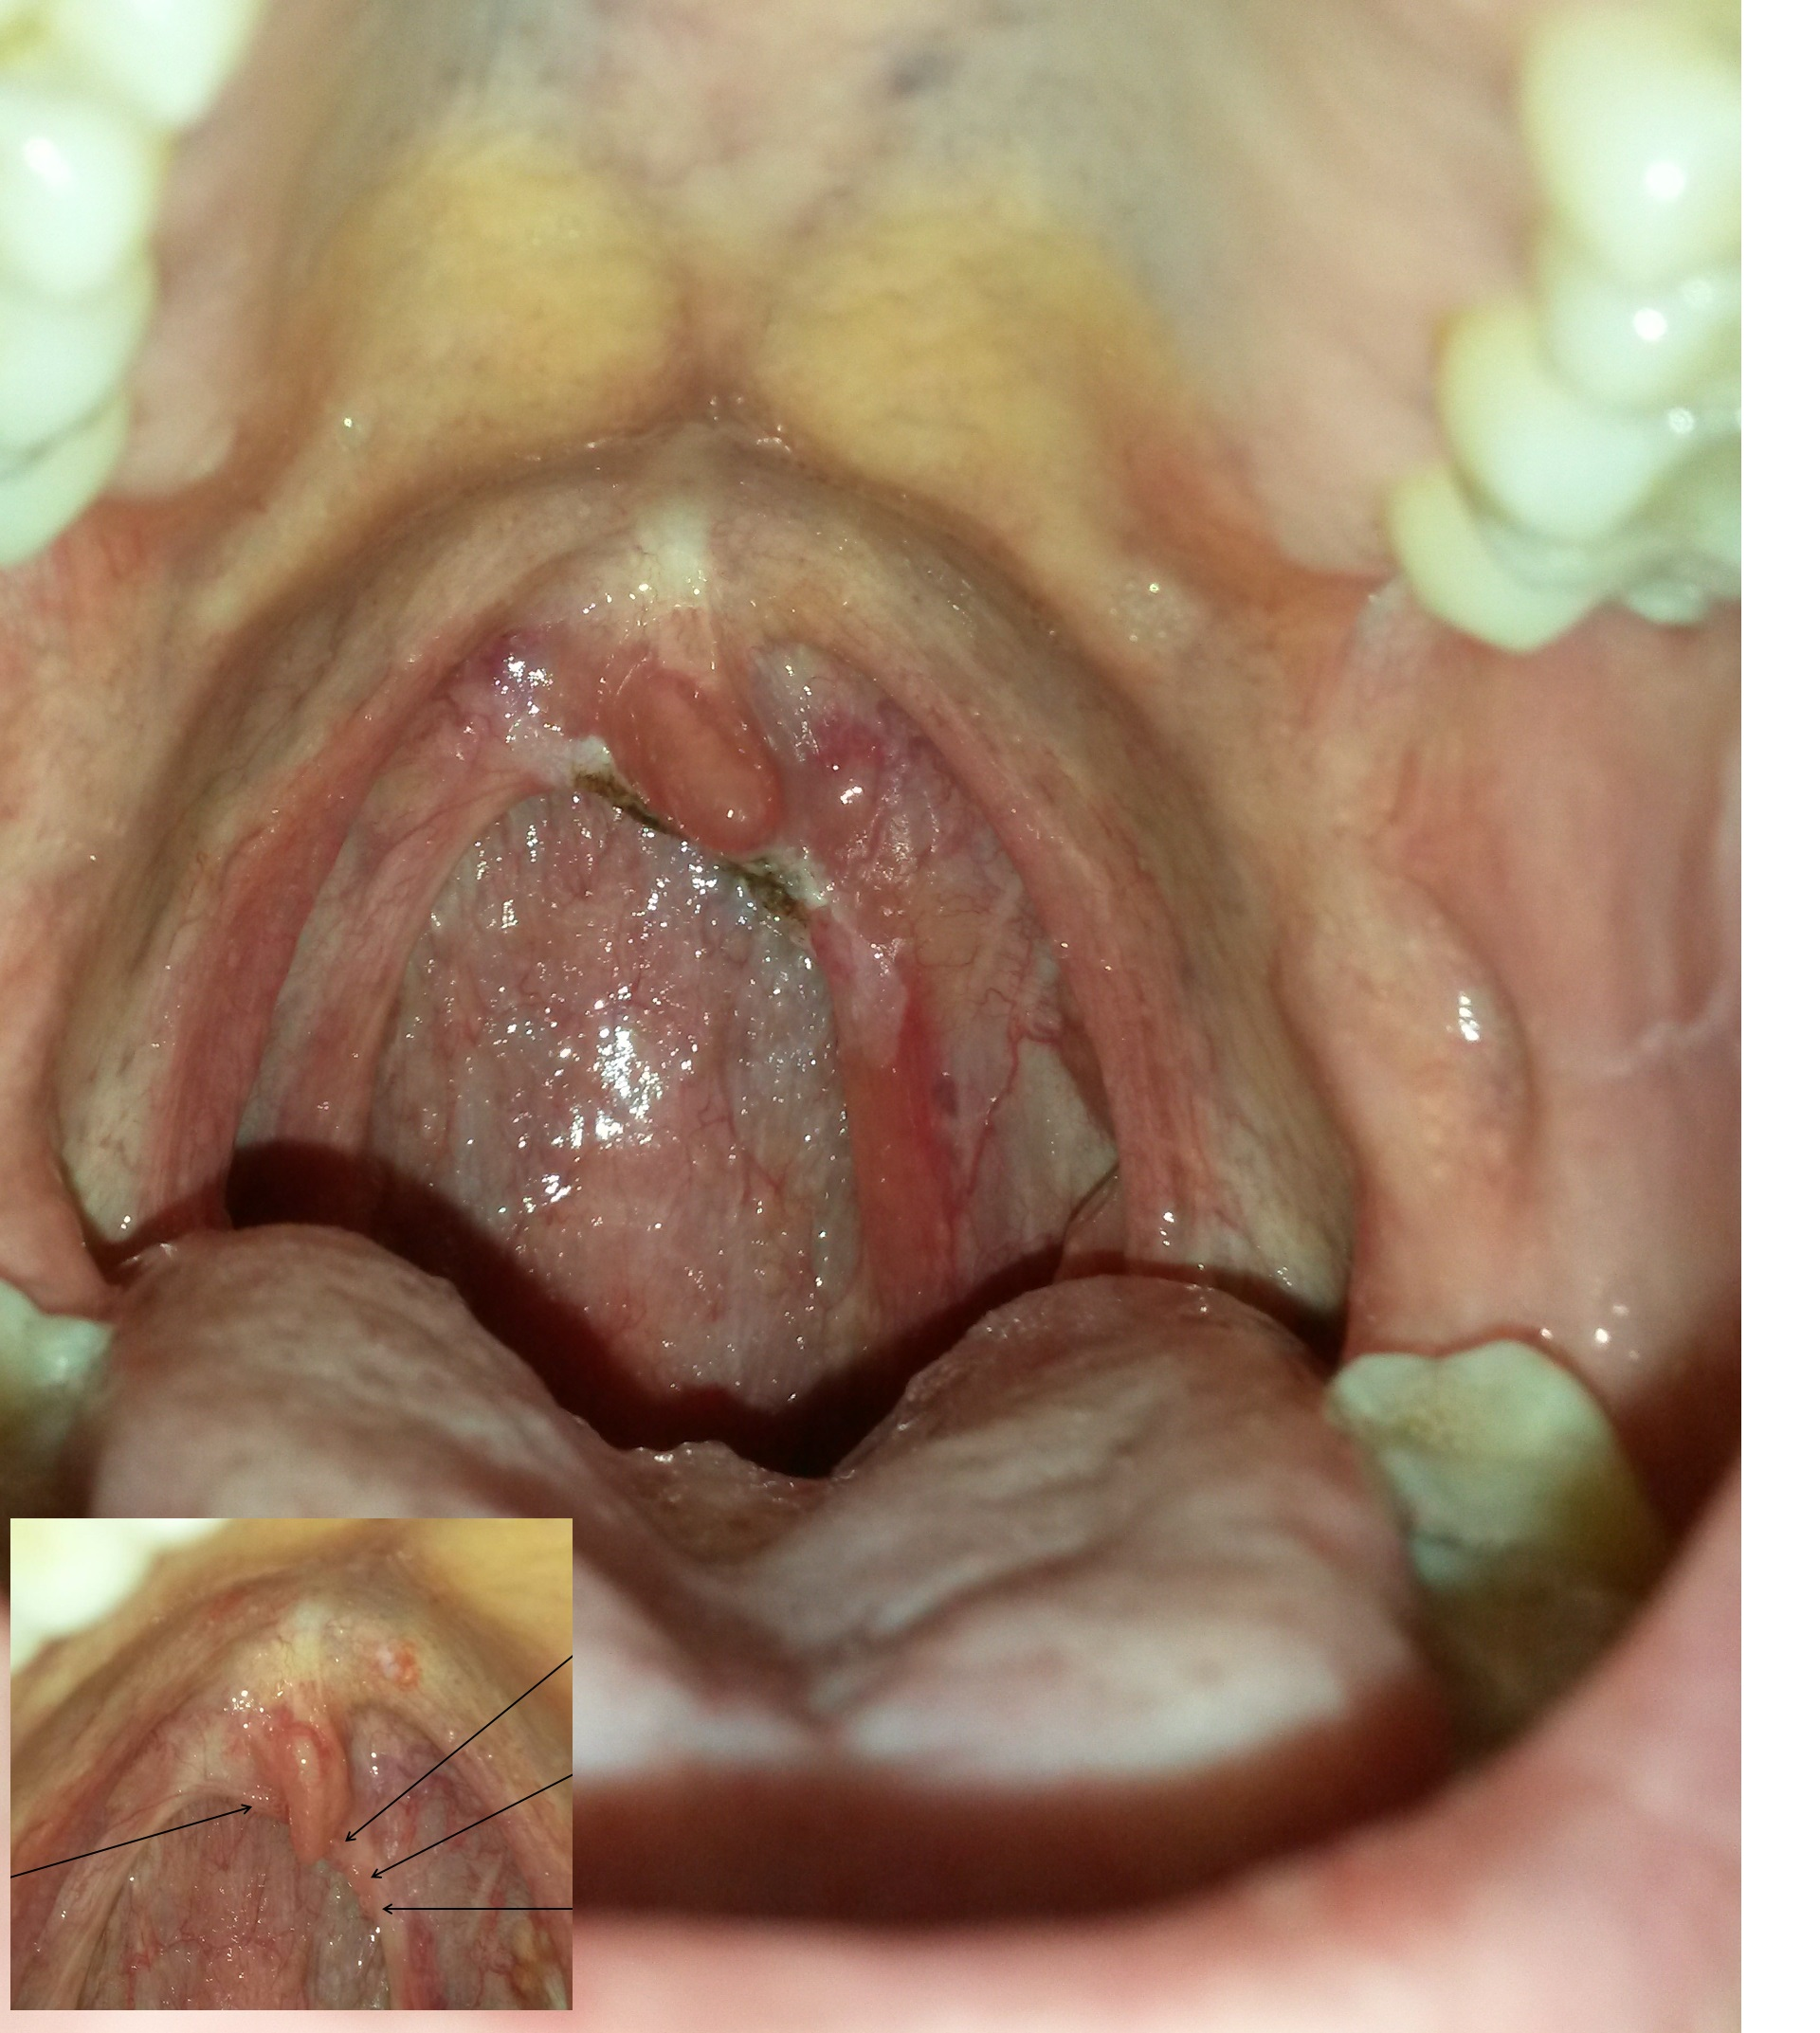 hpv tongue wart treatment